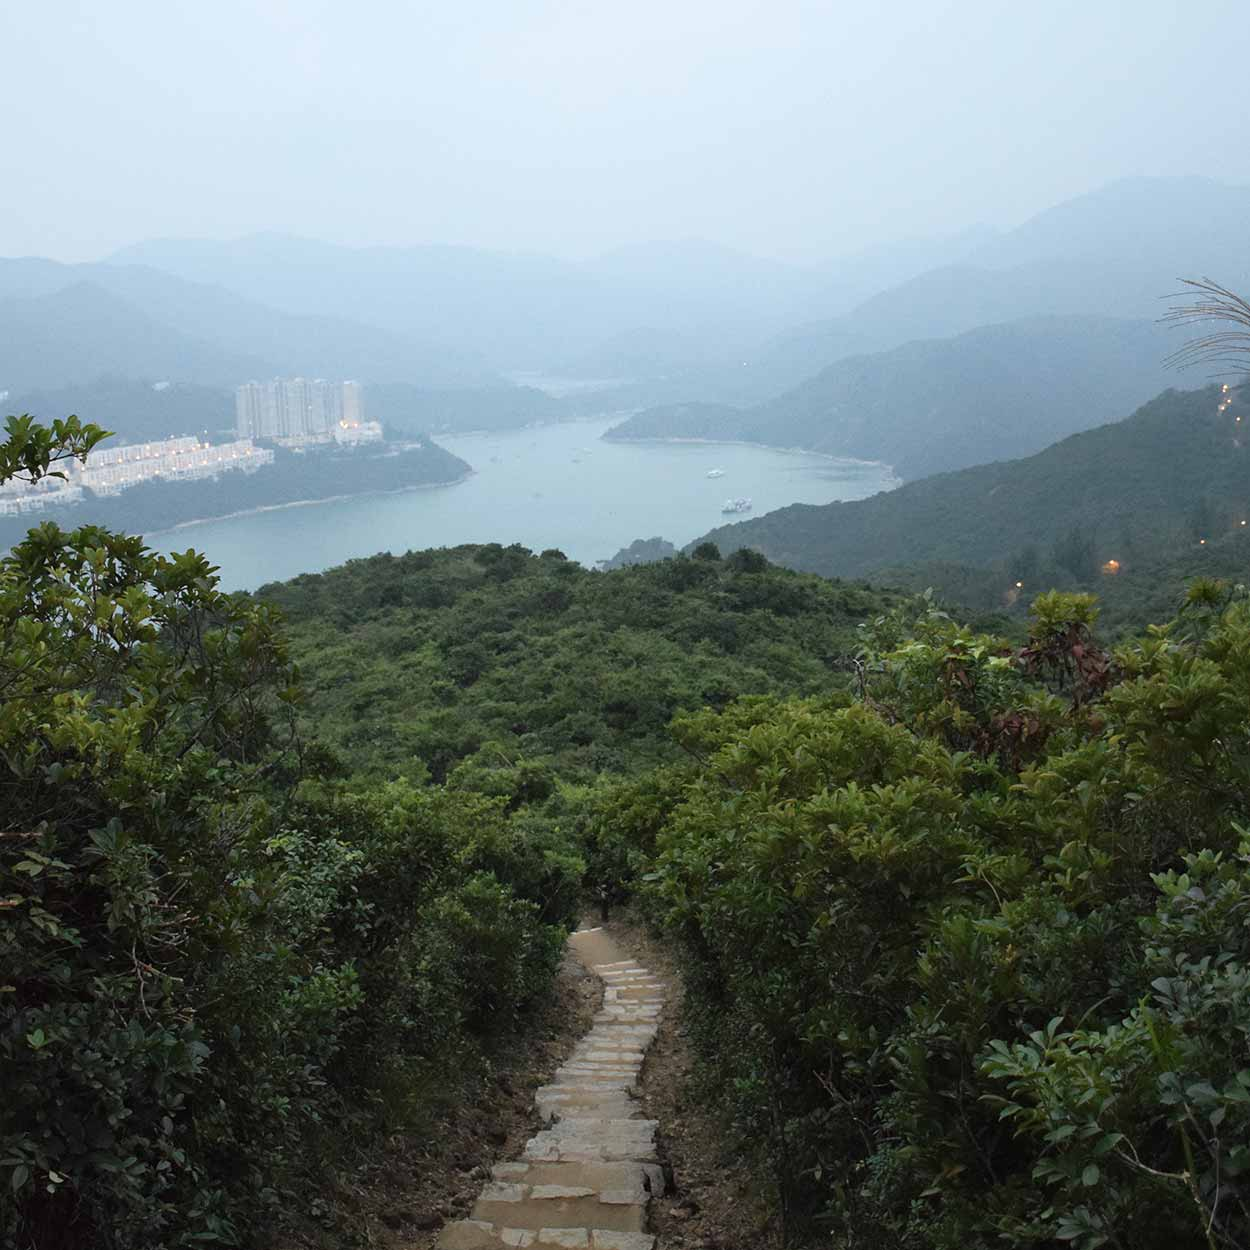 Looking towards Tai Tam Harbour, Dragon's Back, Hong Kong Trail Section 8, China